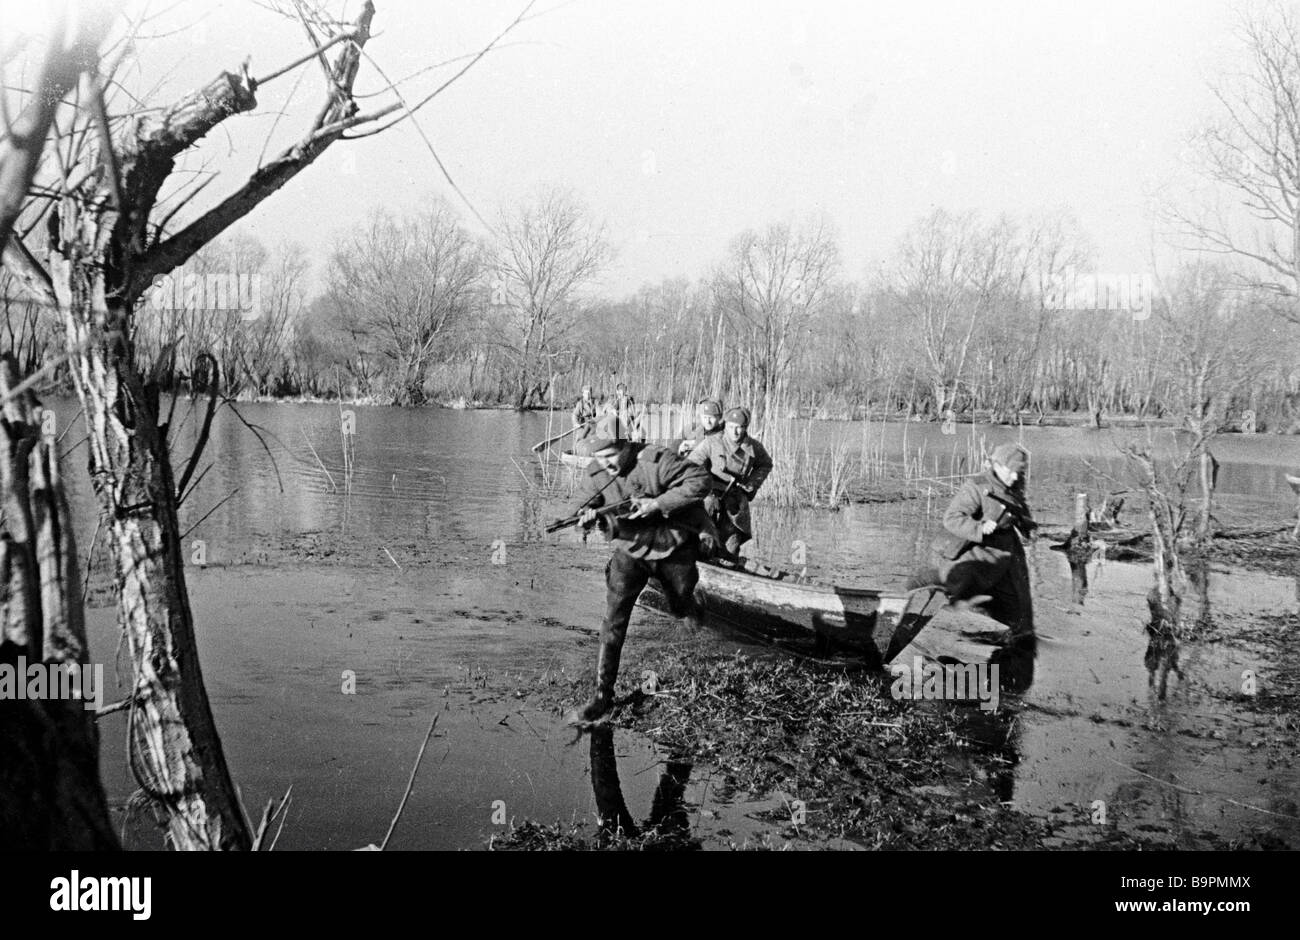 Soldiers with rifles making their way in water - Stock Image